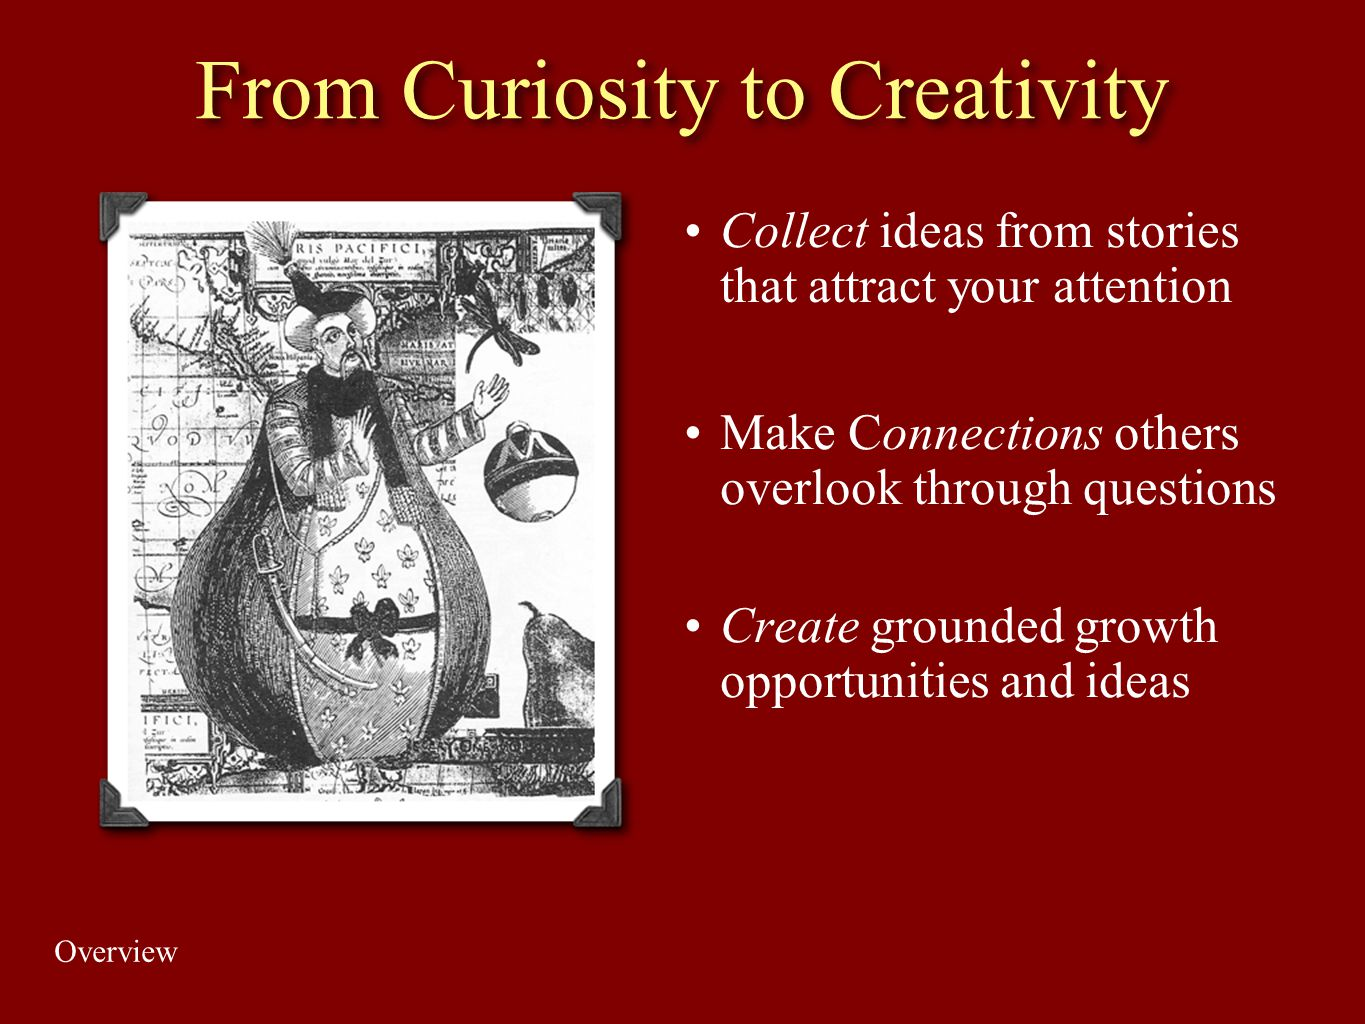 From Curiosity to Creativity